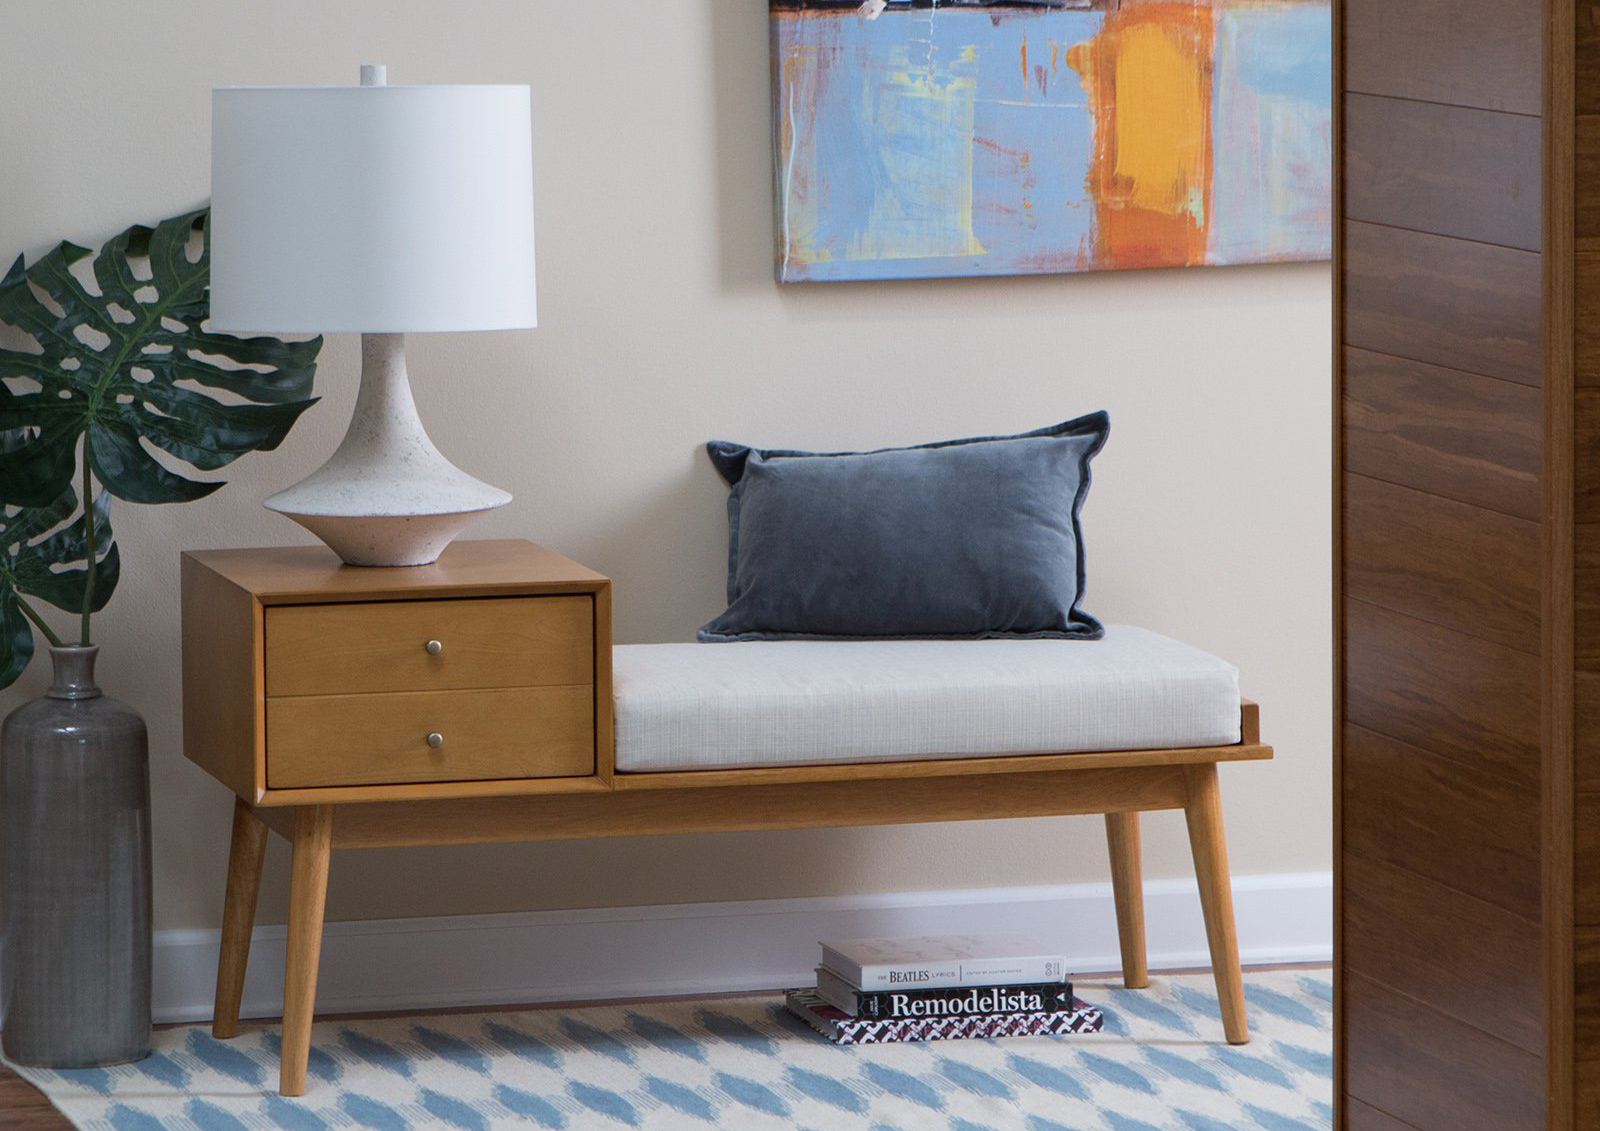 Peachy Modern Storage Bench Top 10 Solutions For Your Entryway Ocoug Best Dining Table And Chair Ideas Images Ocougorg